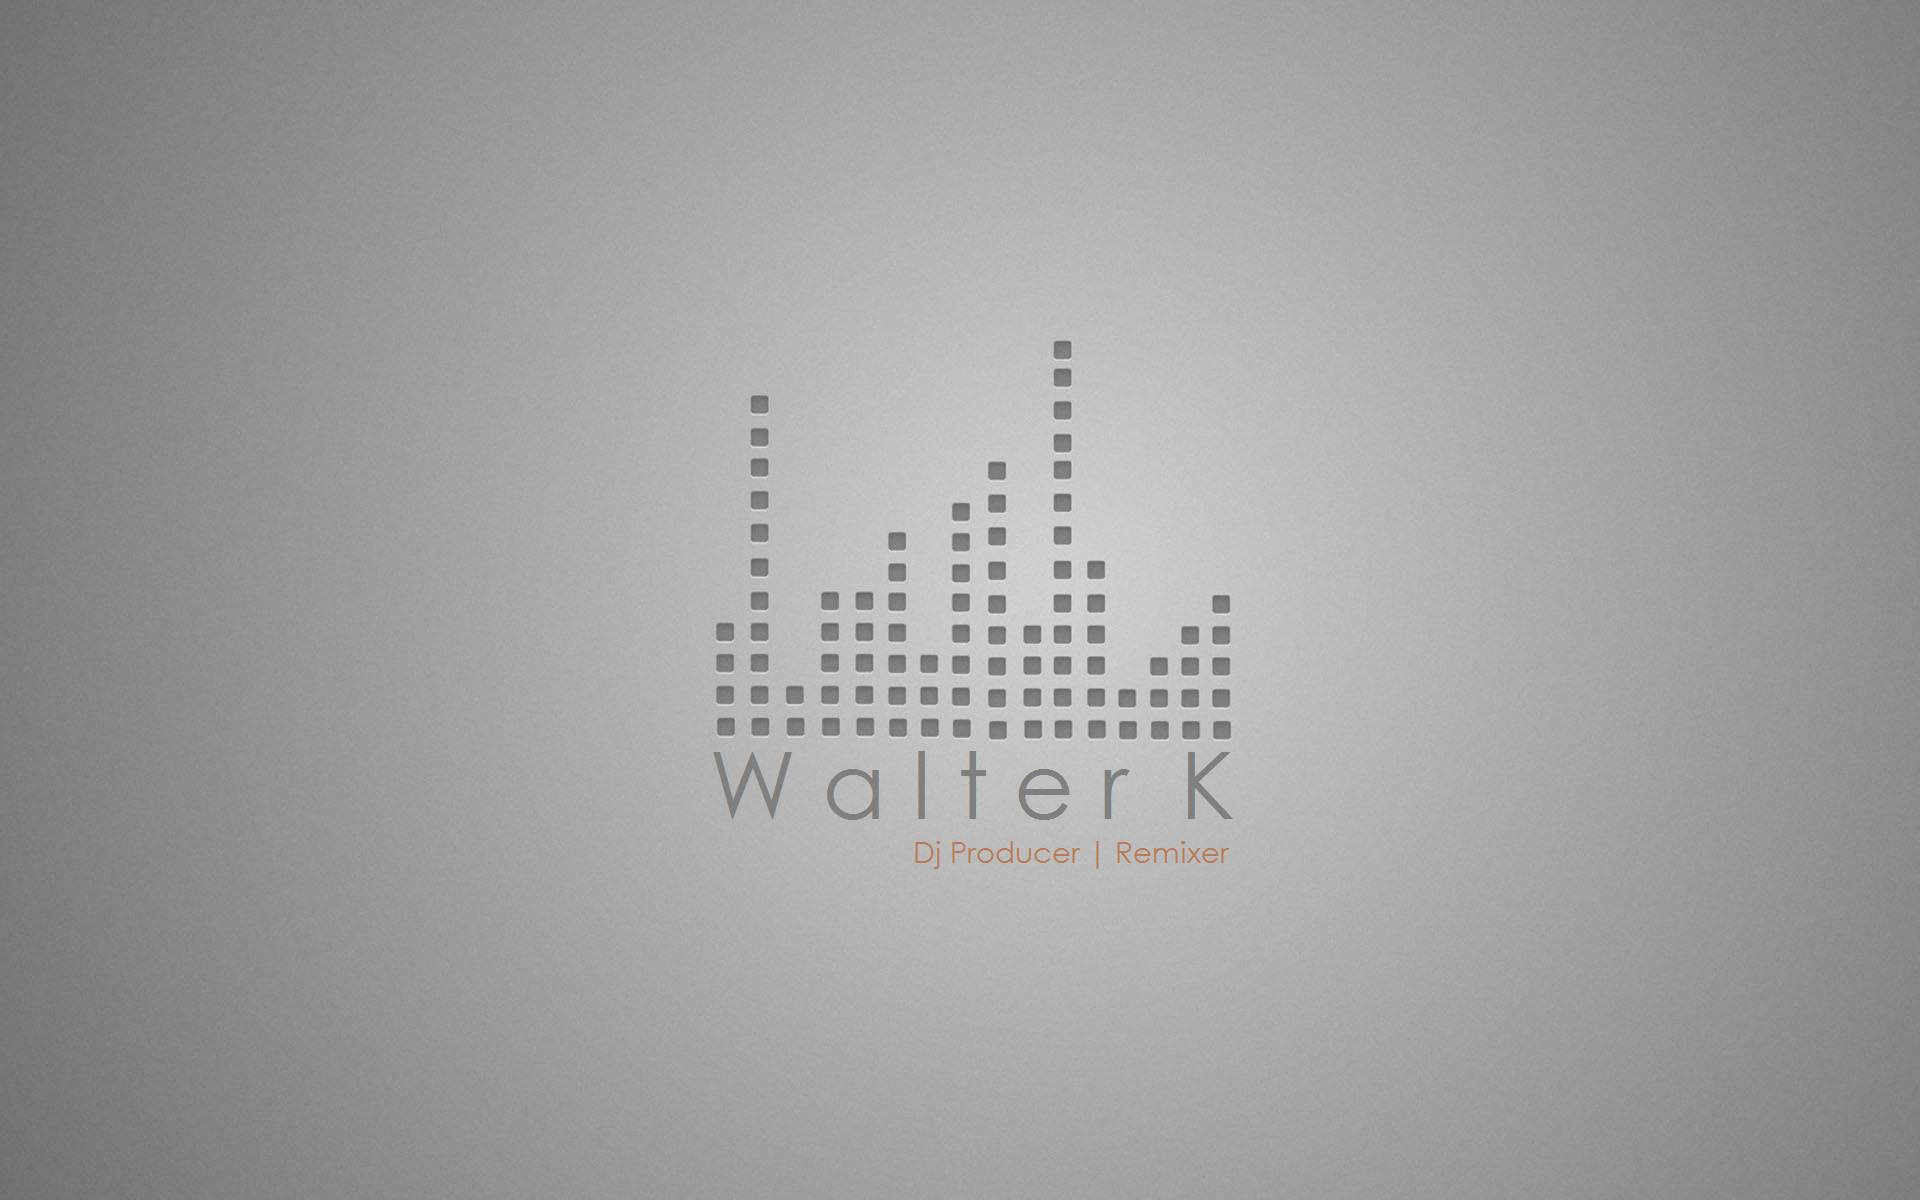 Altruism :: Altruism 002 Guest Walter K Argentina (aired on October 3rd, 2013) banner logo